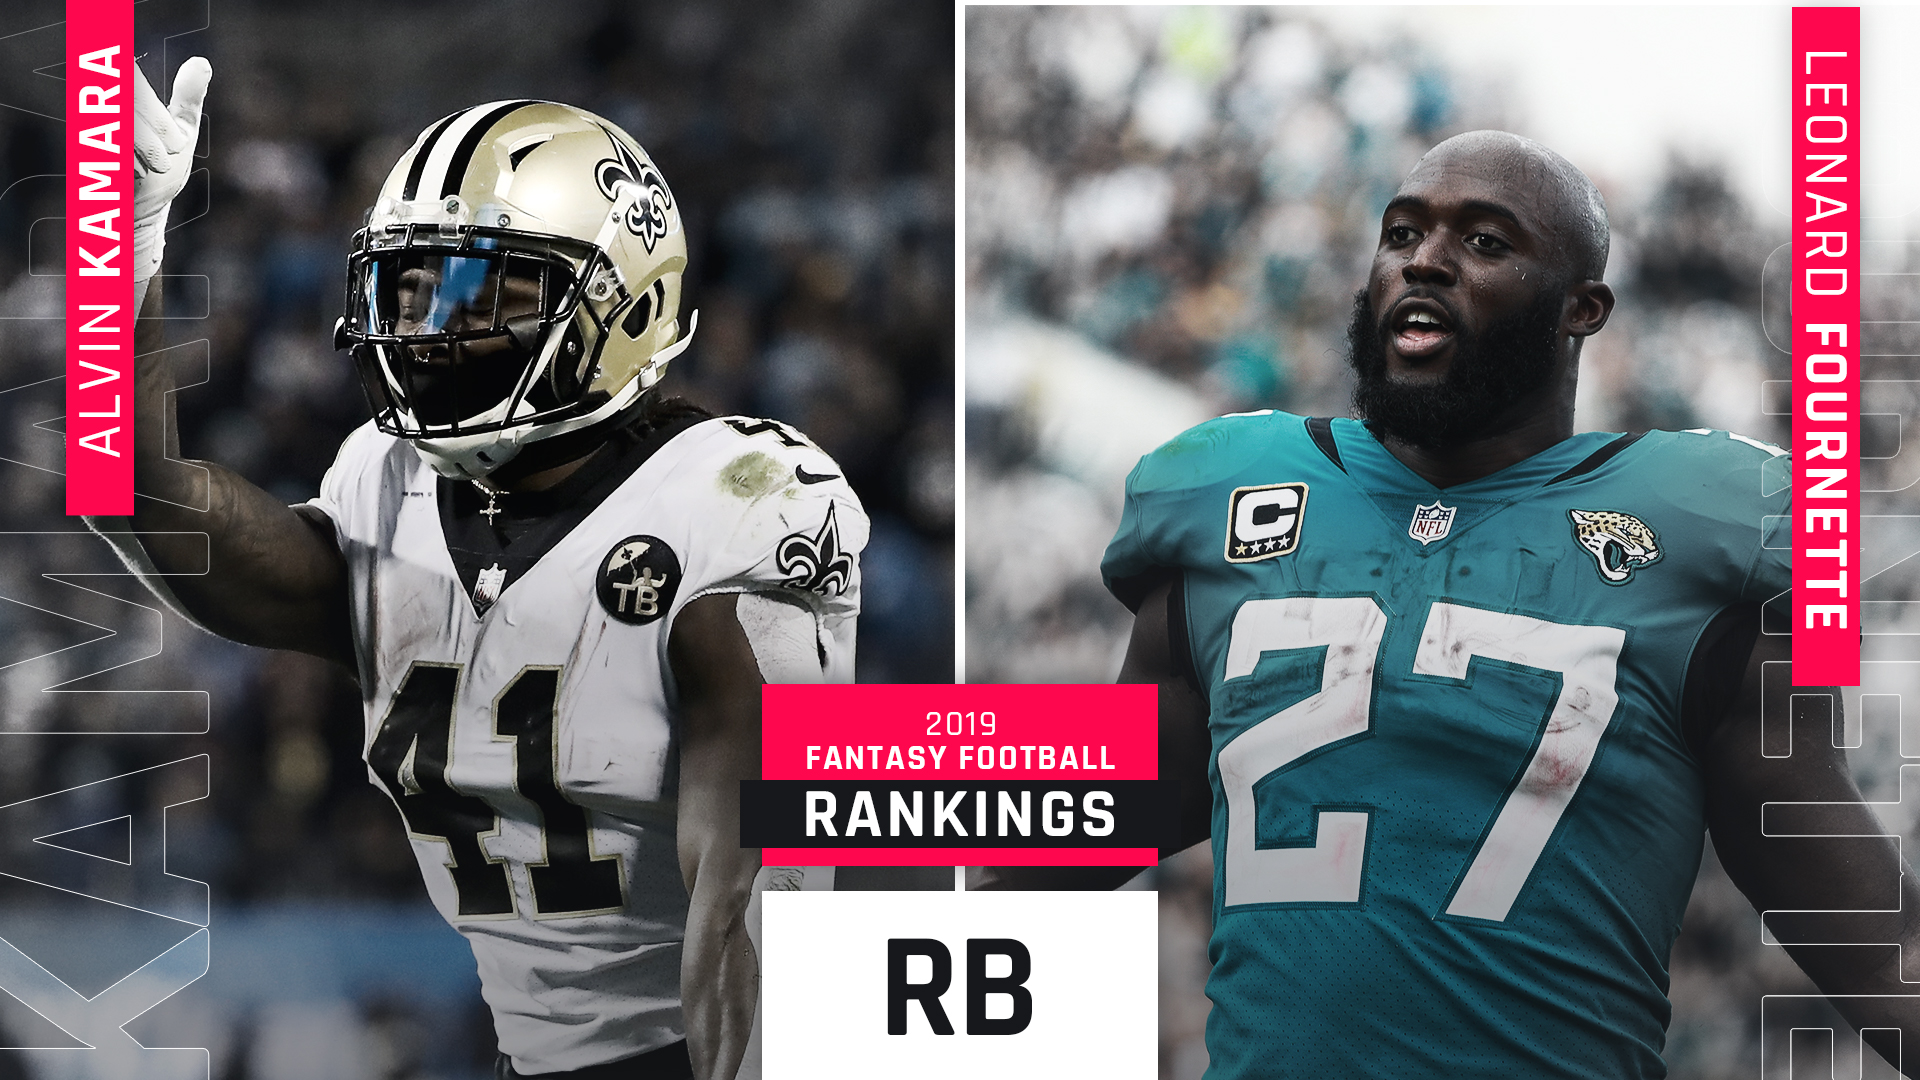 Updated 2019 Fantasy RB Rankings: Top running backs, sleepers for your draft cheat sheet